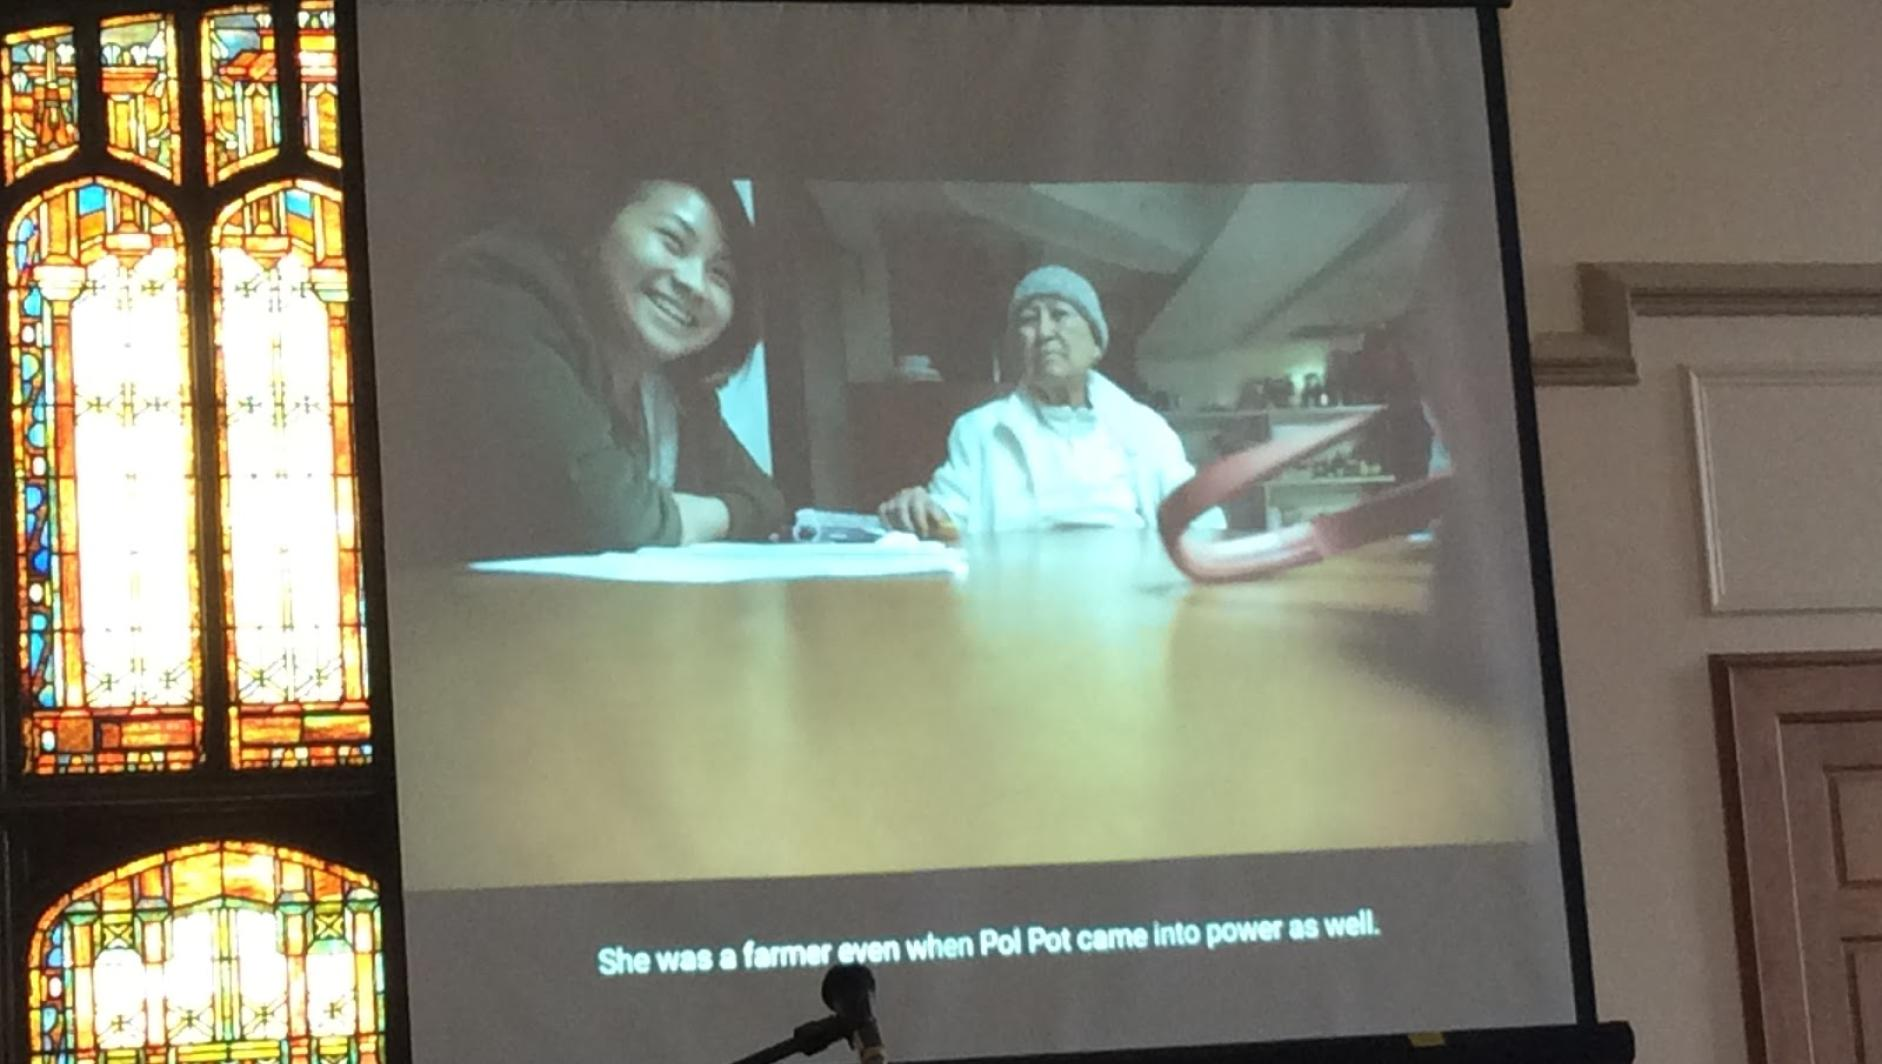 Projector screen shows a Springfield College student talking with a relative about Pol Pot